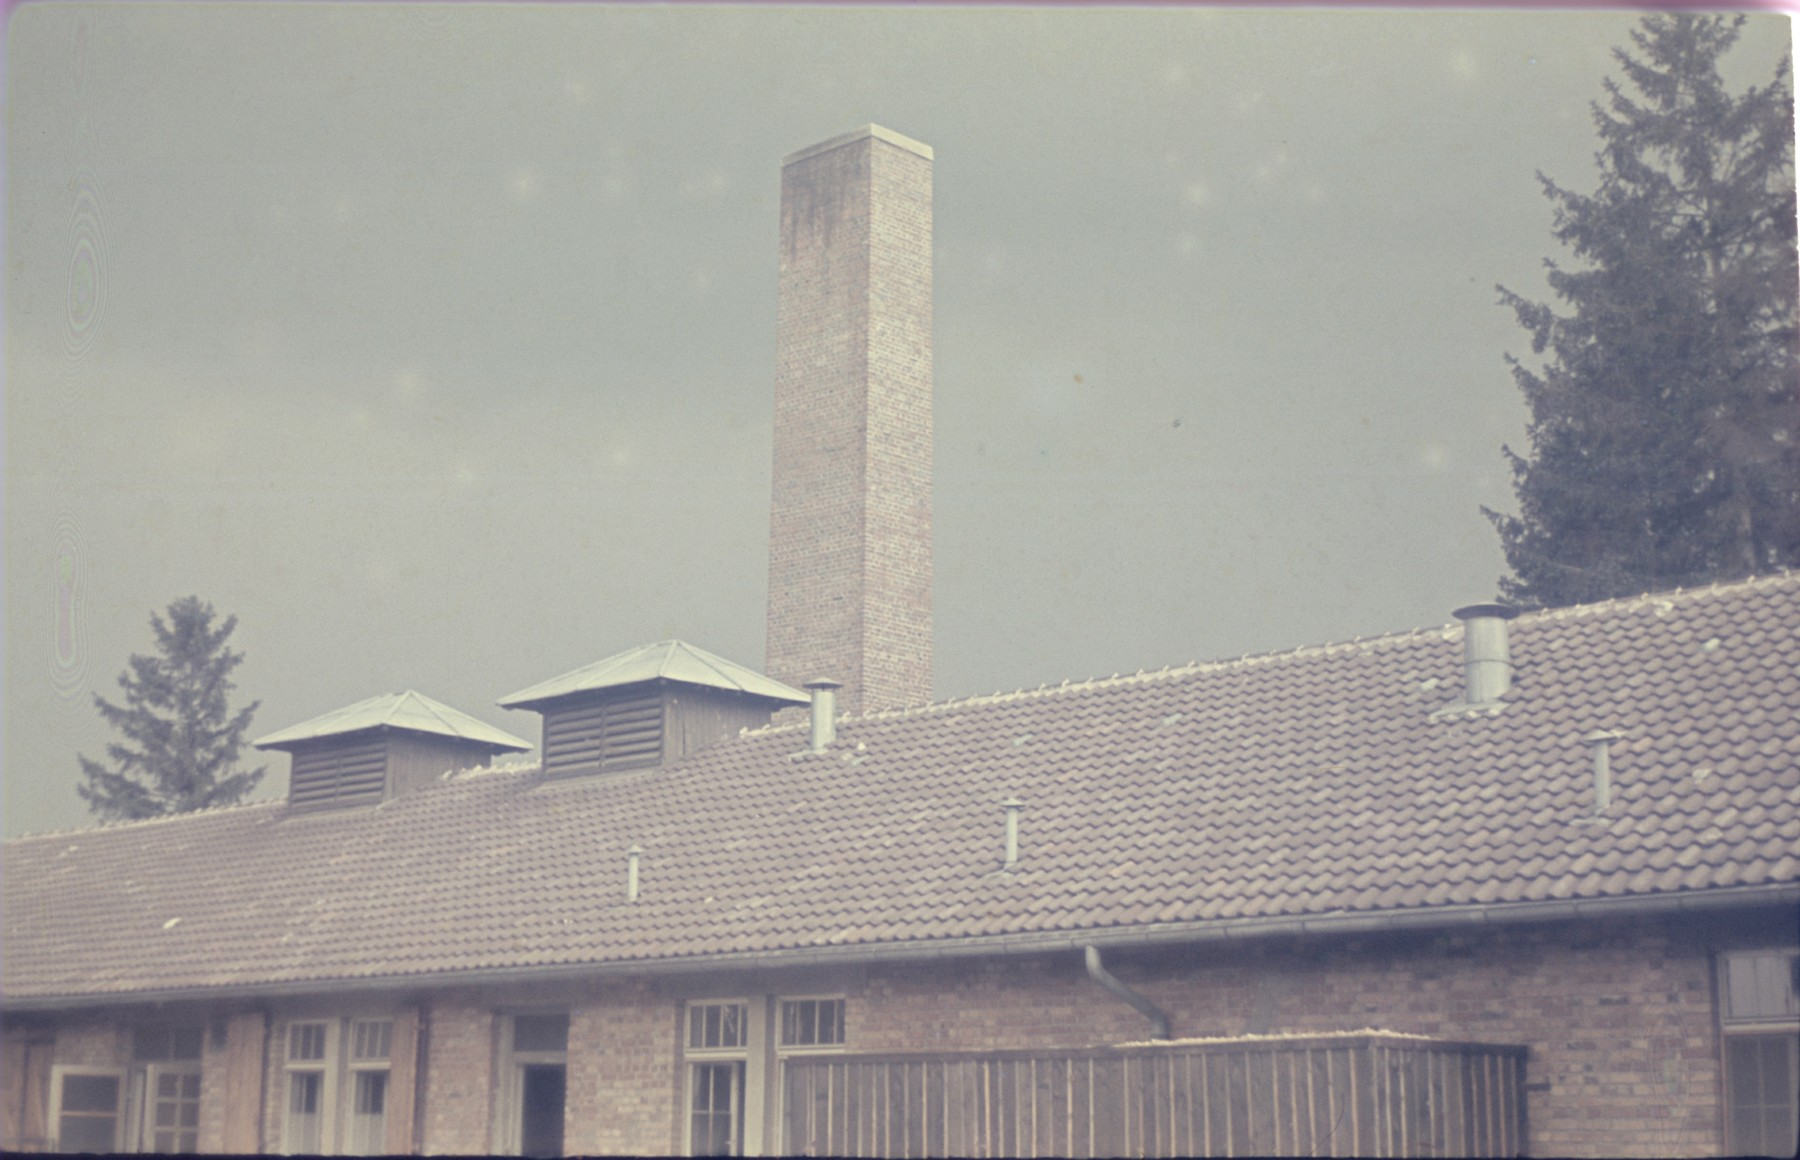 Partial view of the crematorium, focusing on the chimney, in the newly liberated Dachau concentration camp.